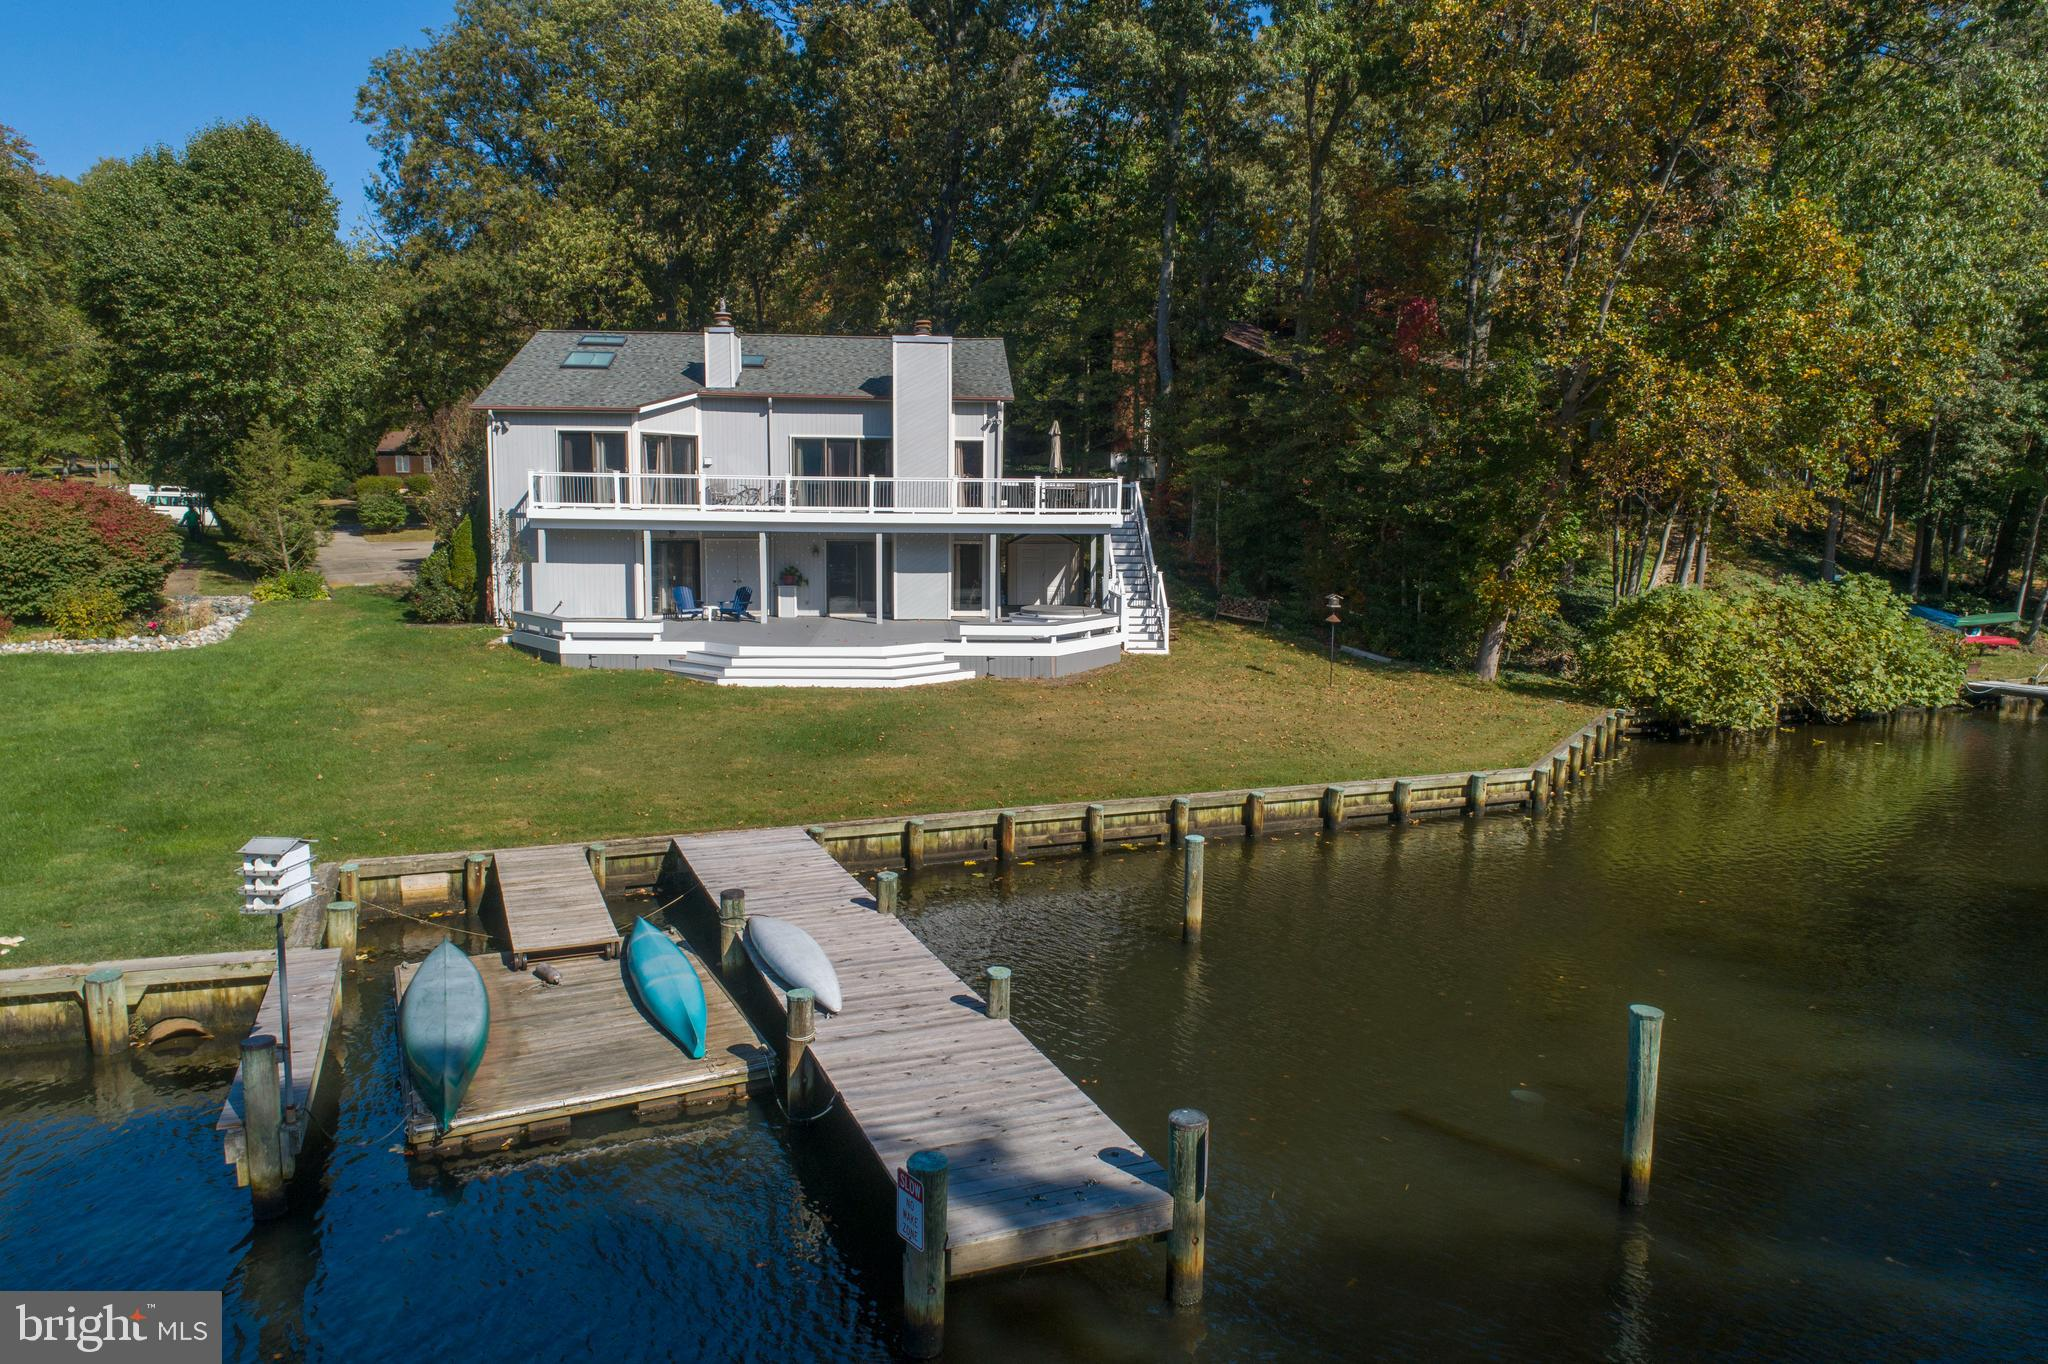 Welcome to 129 Berrywood Dr! This waterfront home is located in the highly sought after Berrywood co